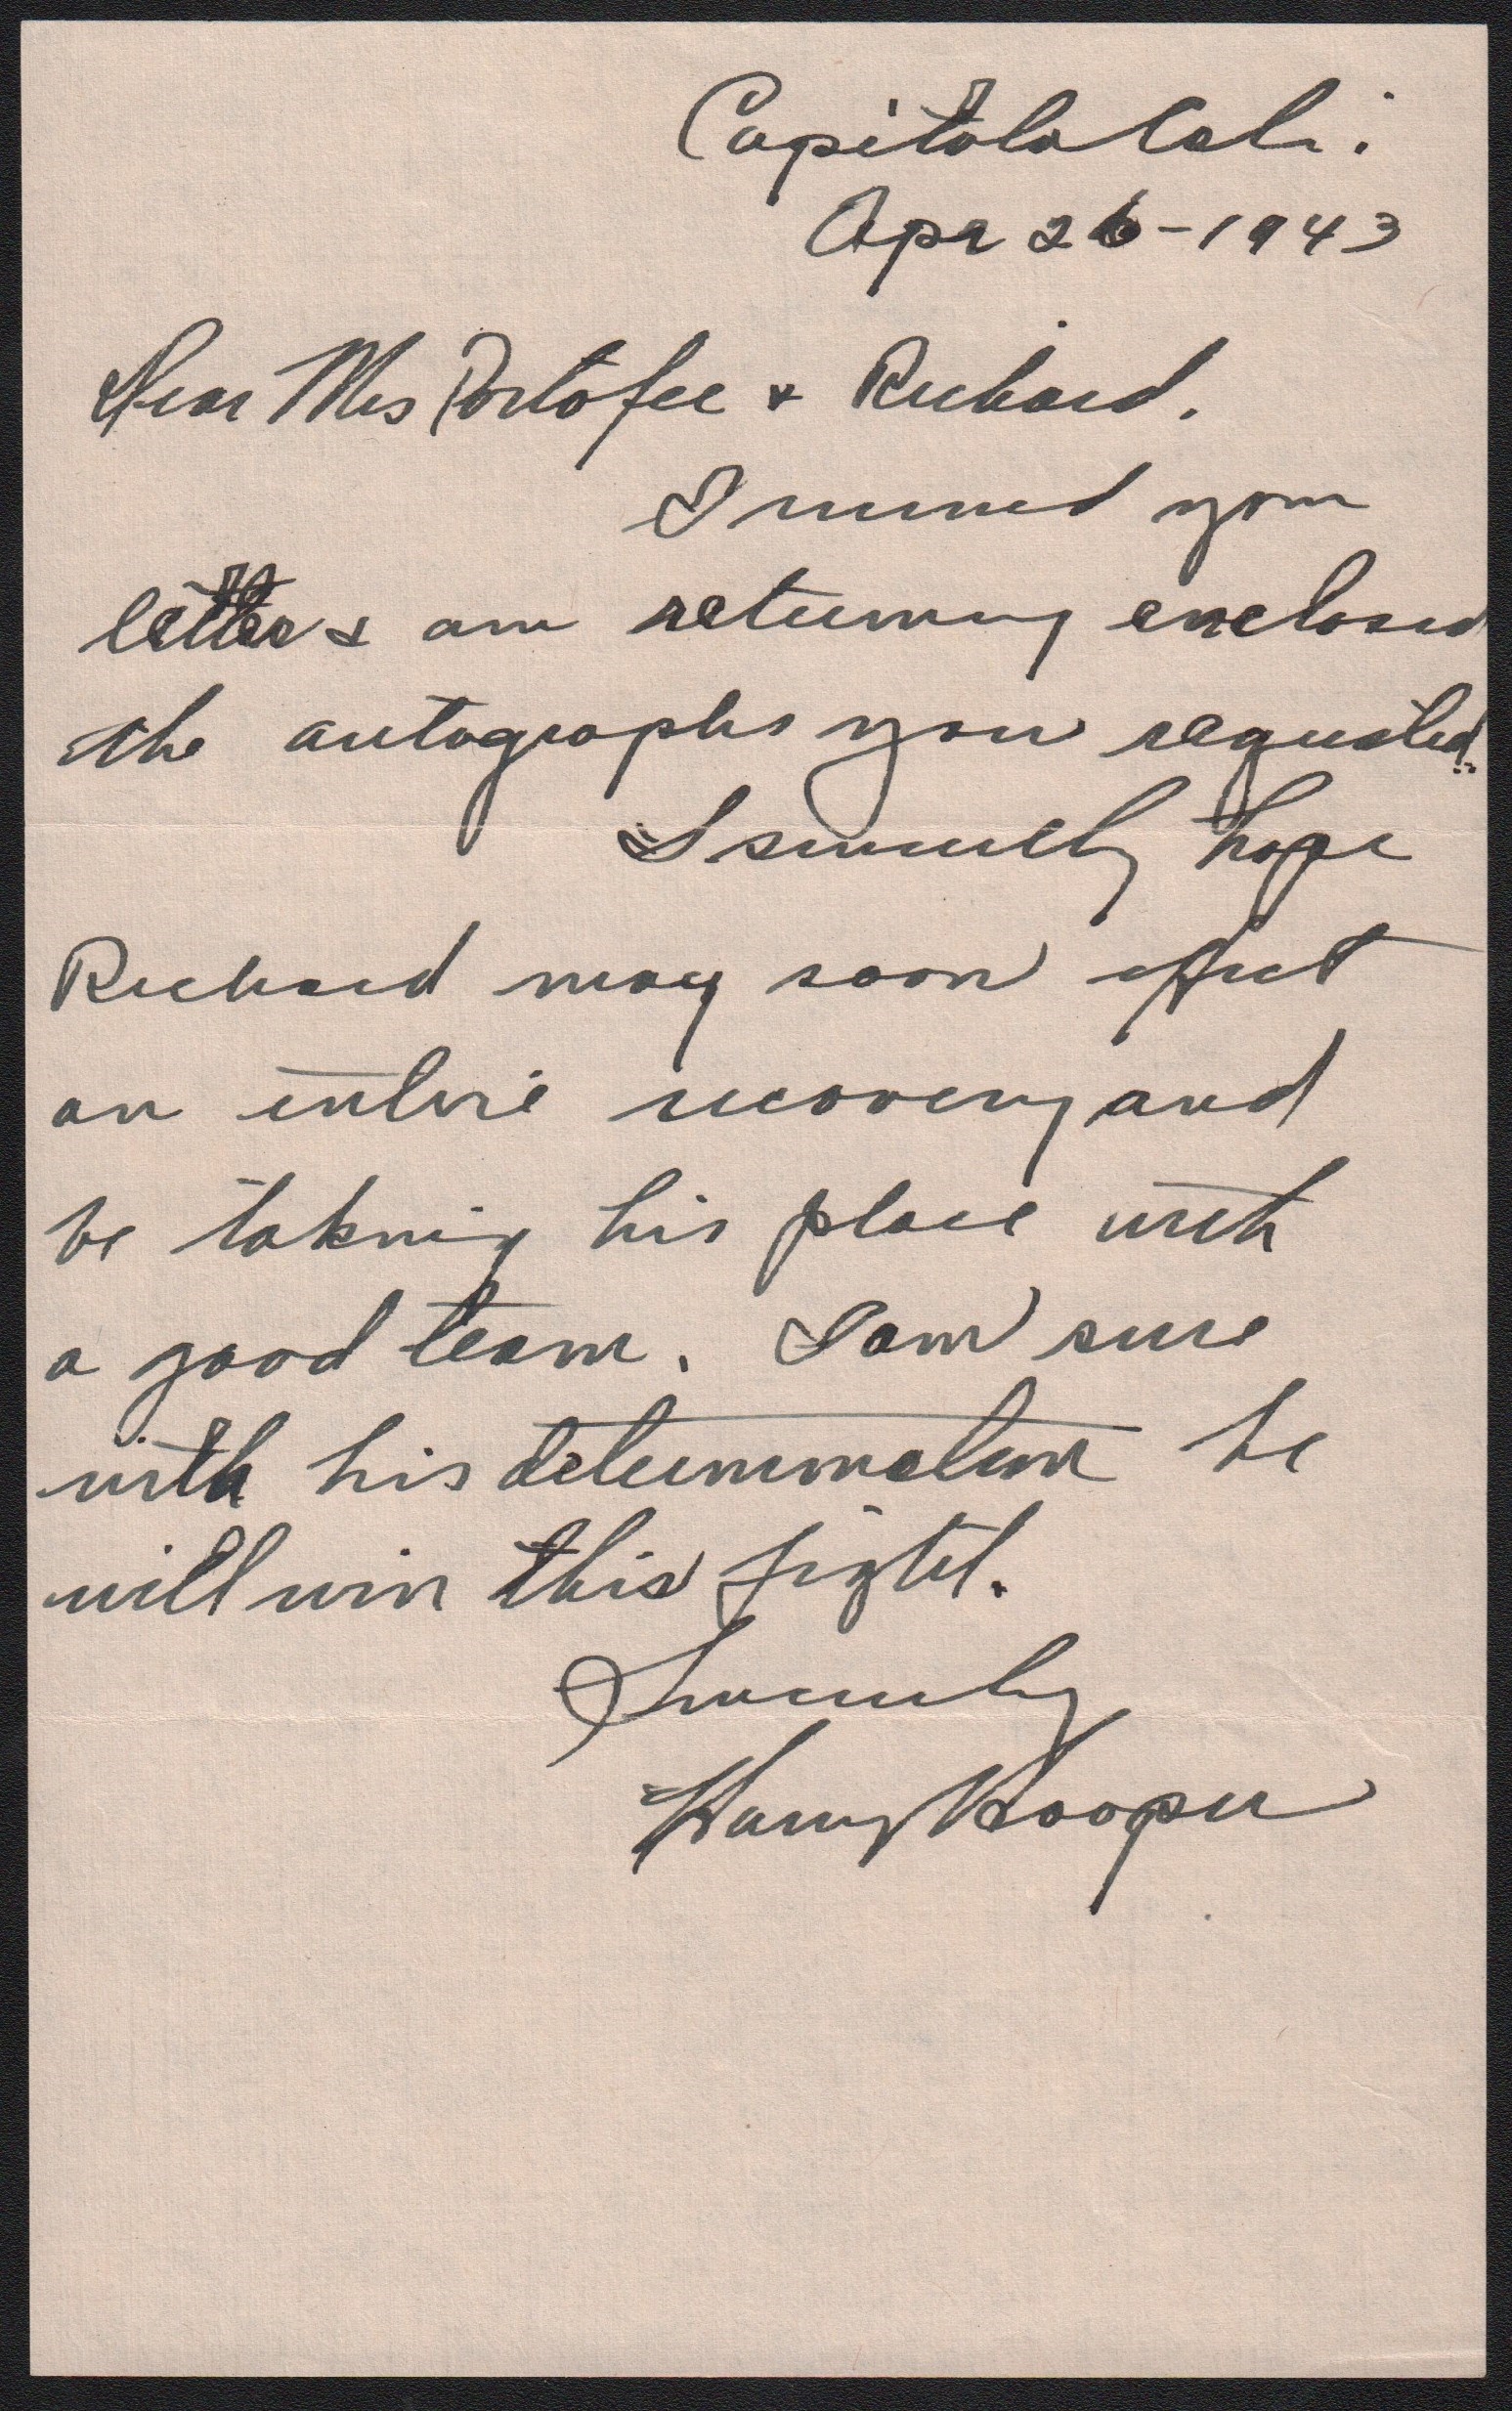 Harry Hooper Handwritten Letter